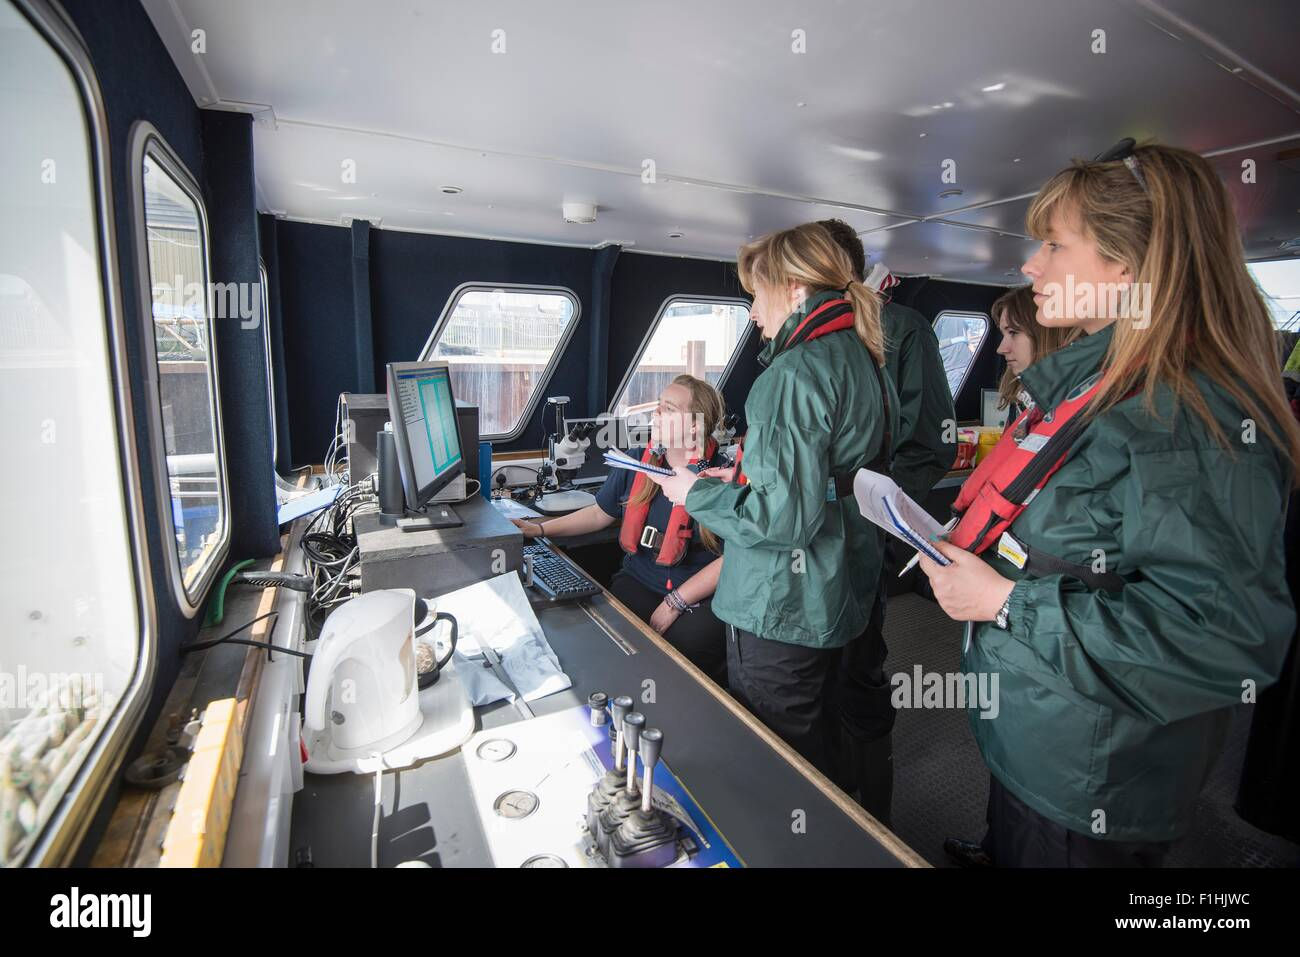 Marine biologists in laboratory on research ship - Stock Image